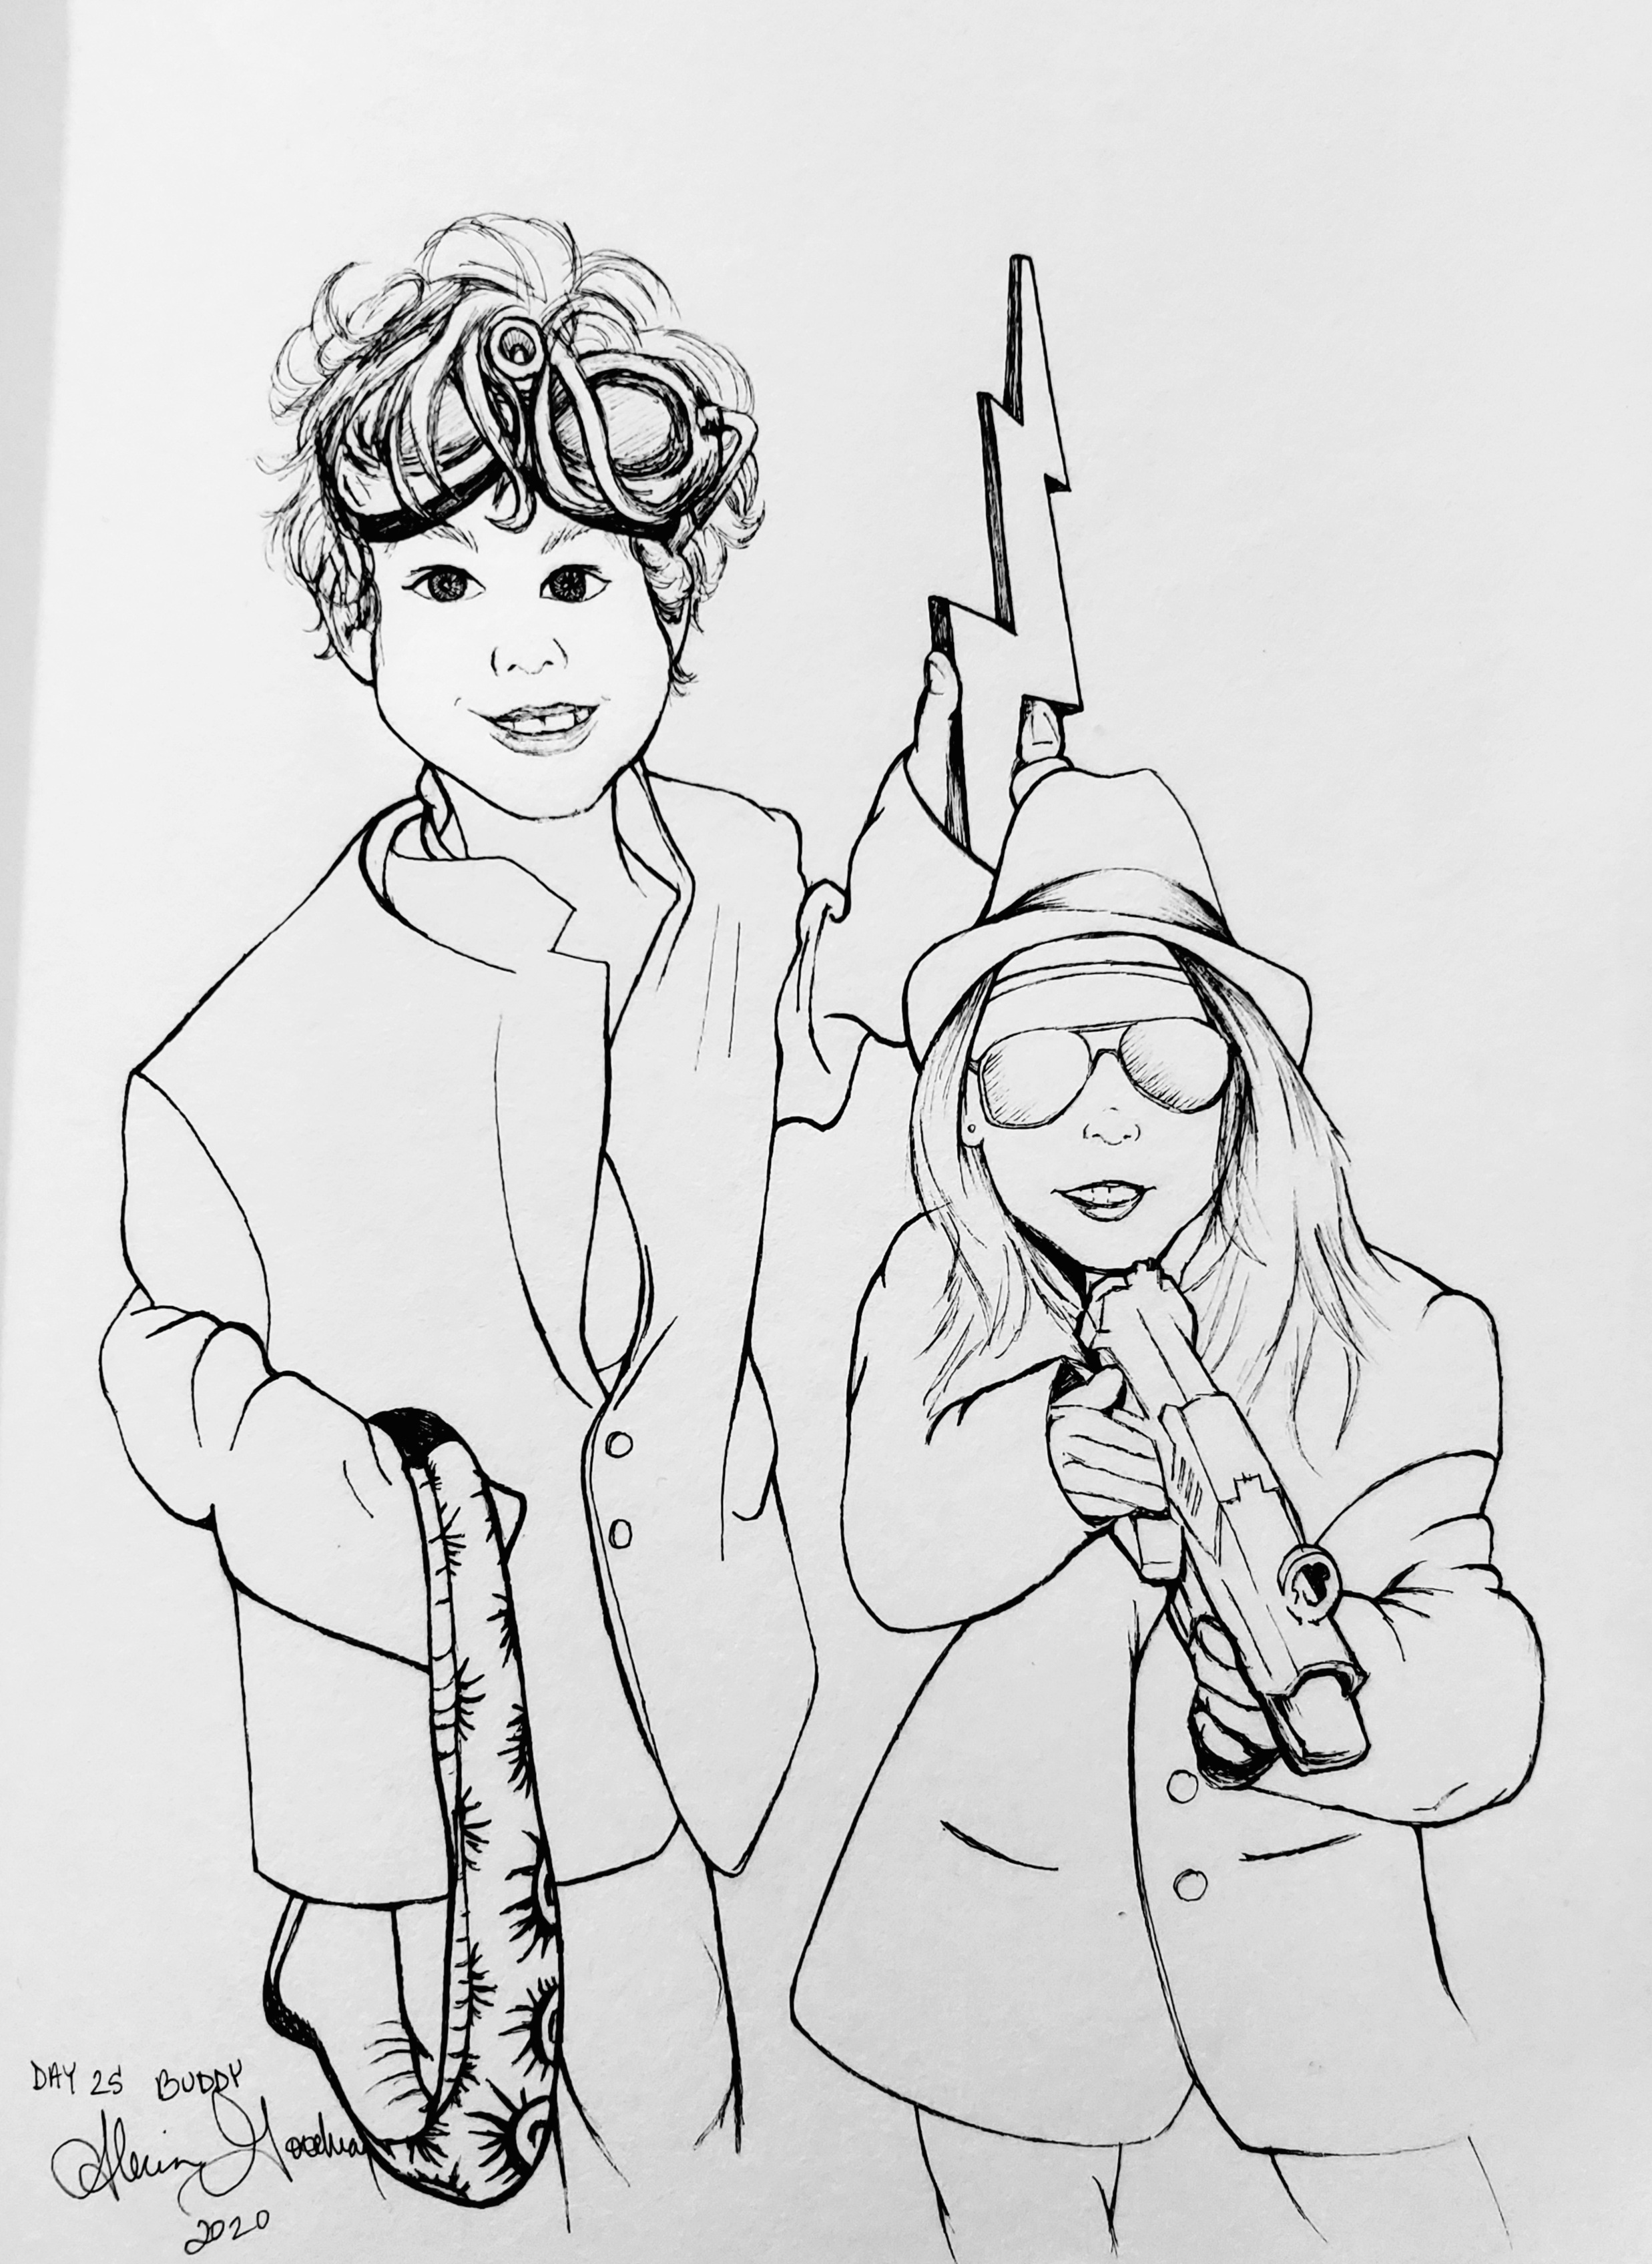 """Inktober Day 25 Buddy ink drawing of boy with goggles and snake and girl with fedora, sunglasses, and nerf gun both wearing suit jackets alecia goodman to present"